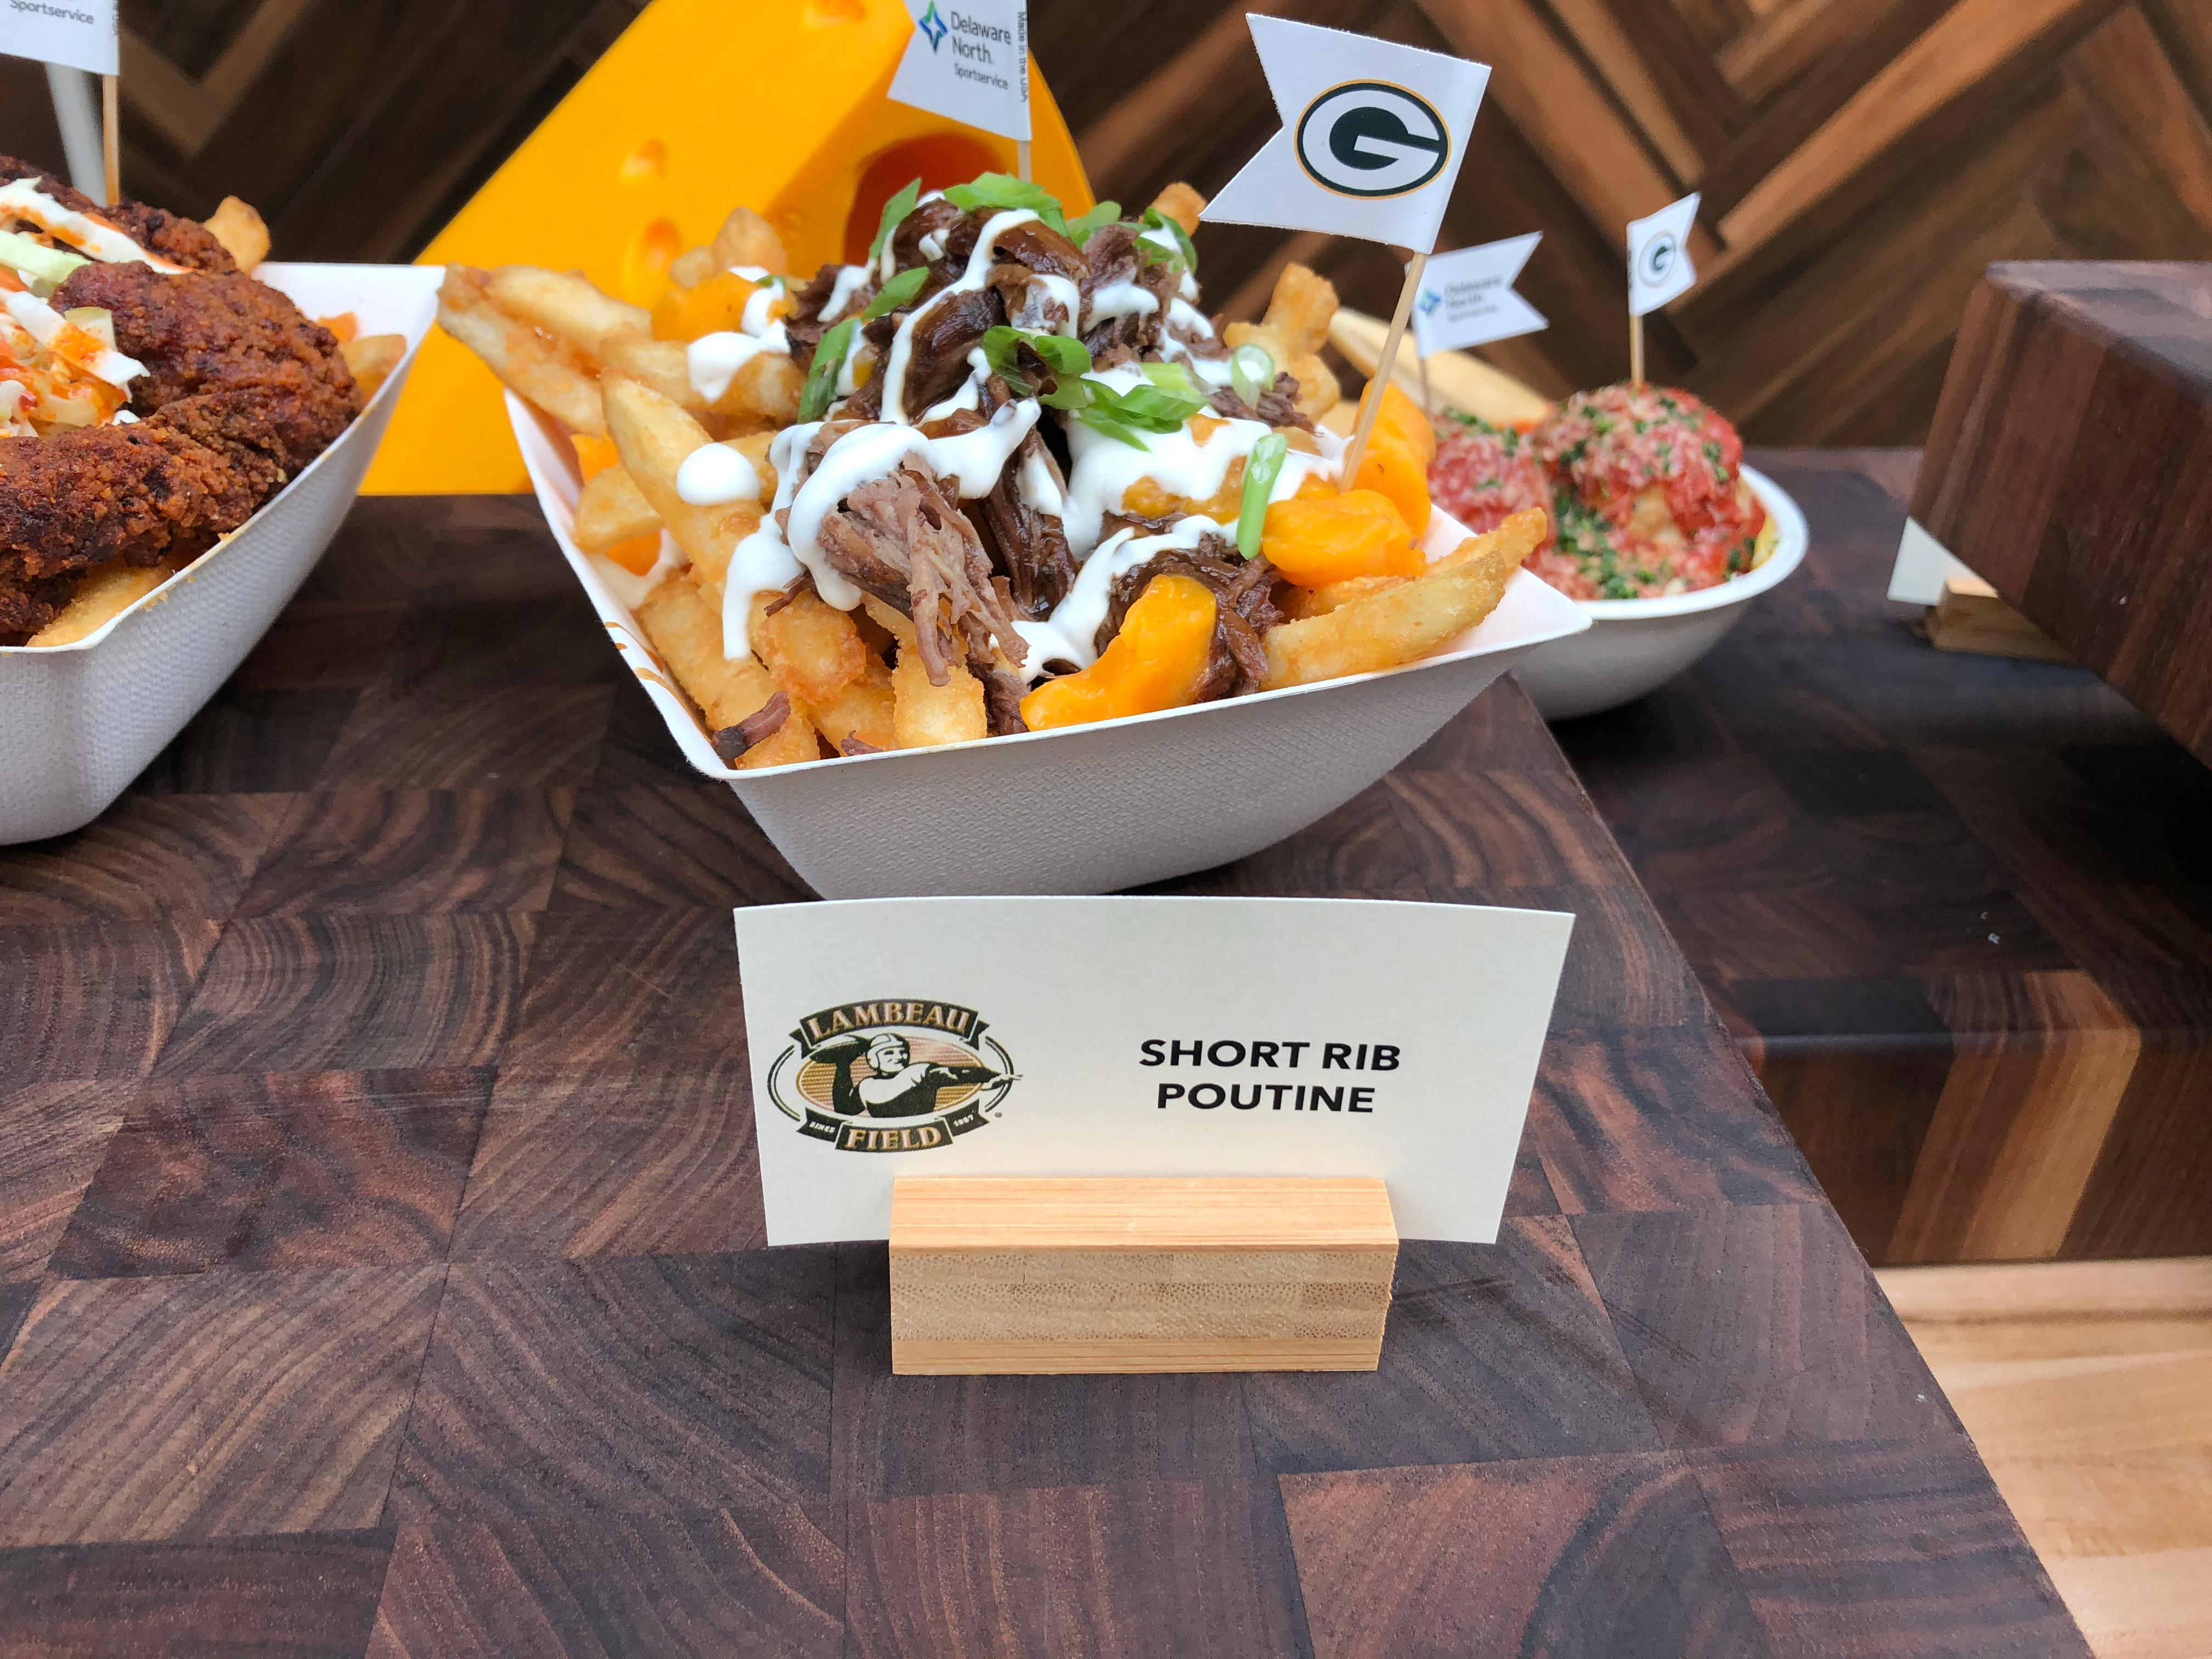 Short Rib Poutine is part of the Packers game day menu, September 10, 2019 (WLUK/Eric Peterson)